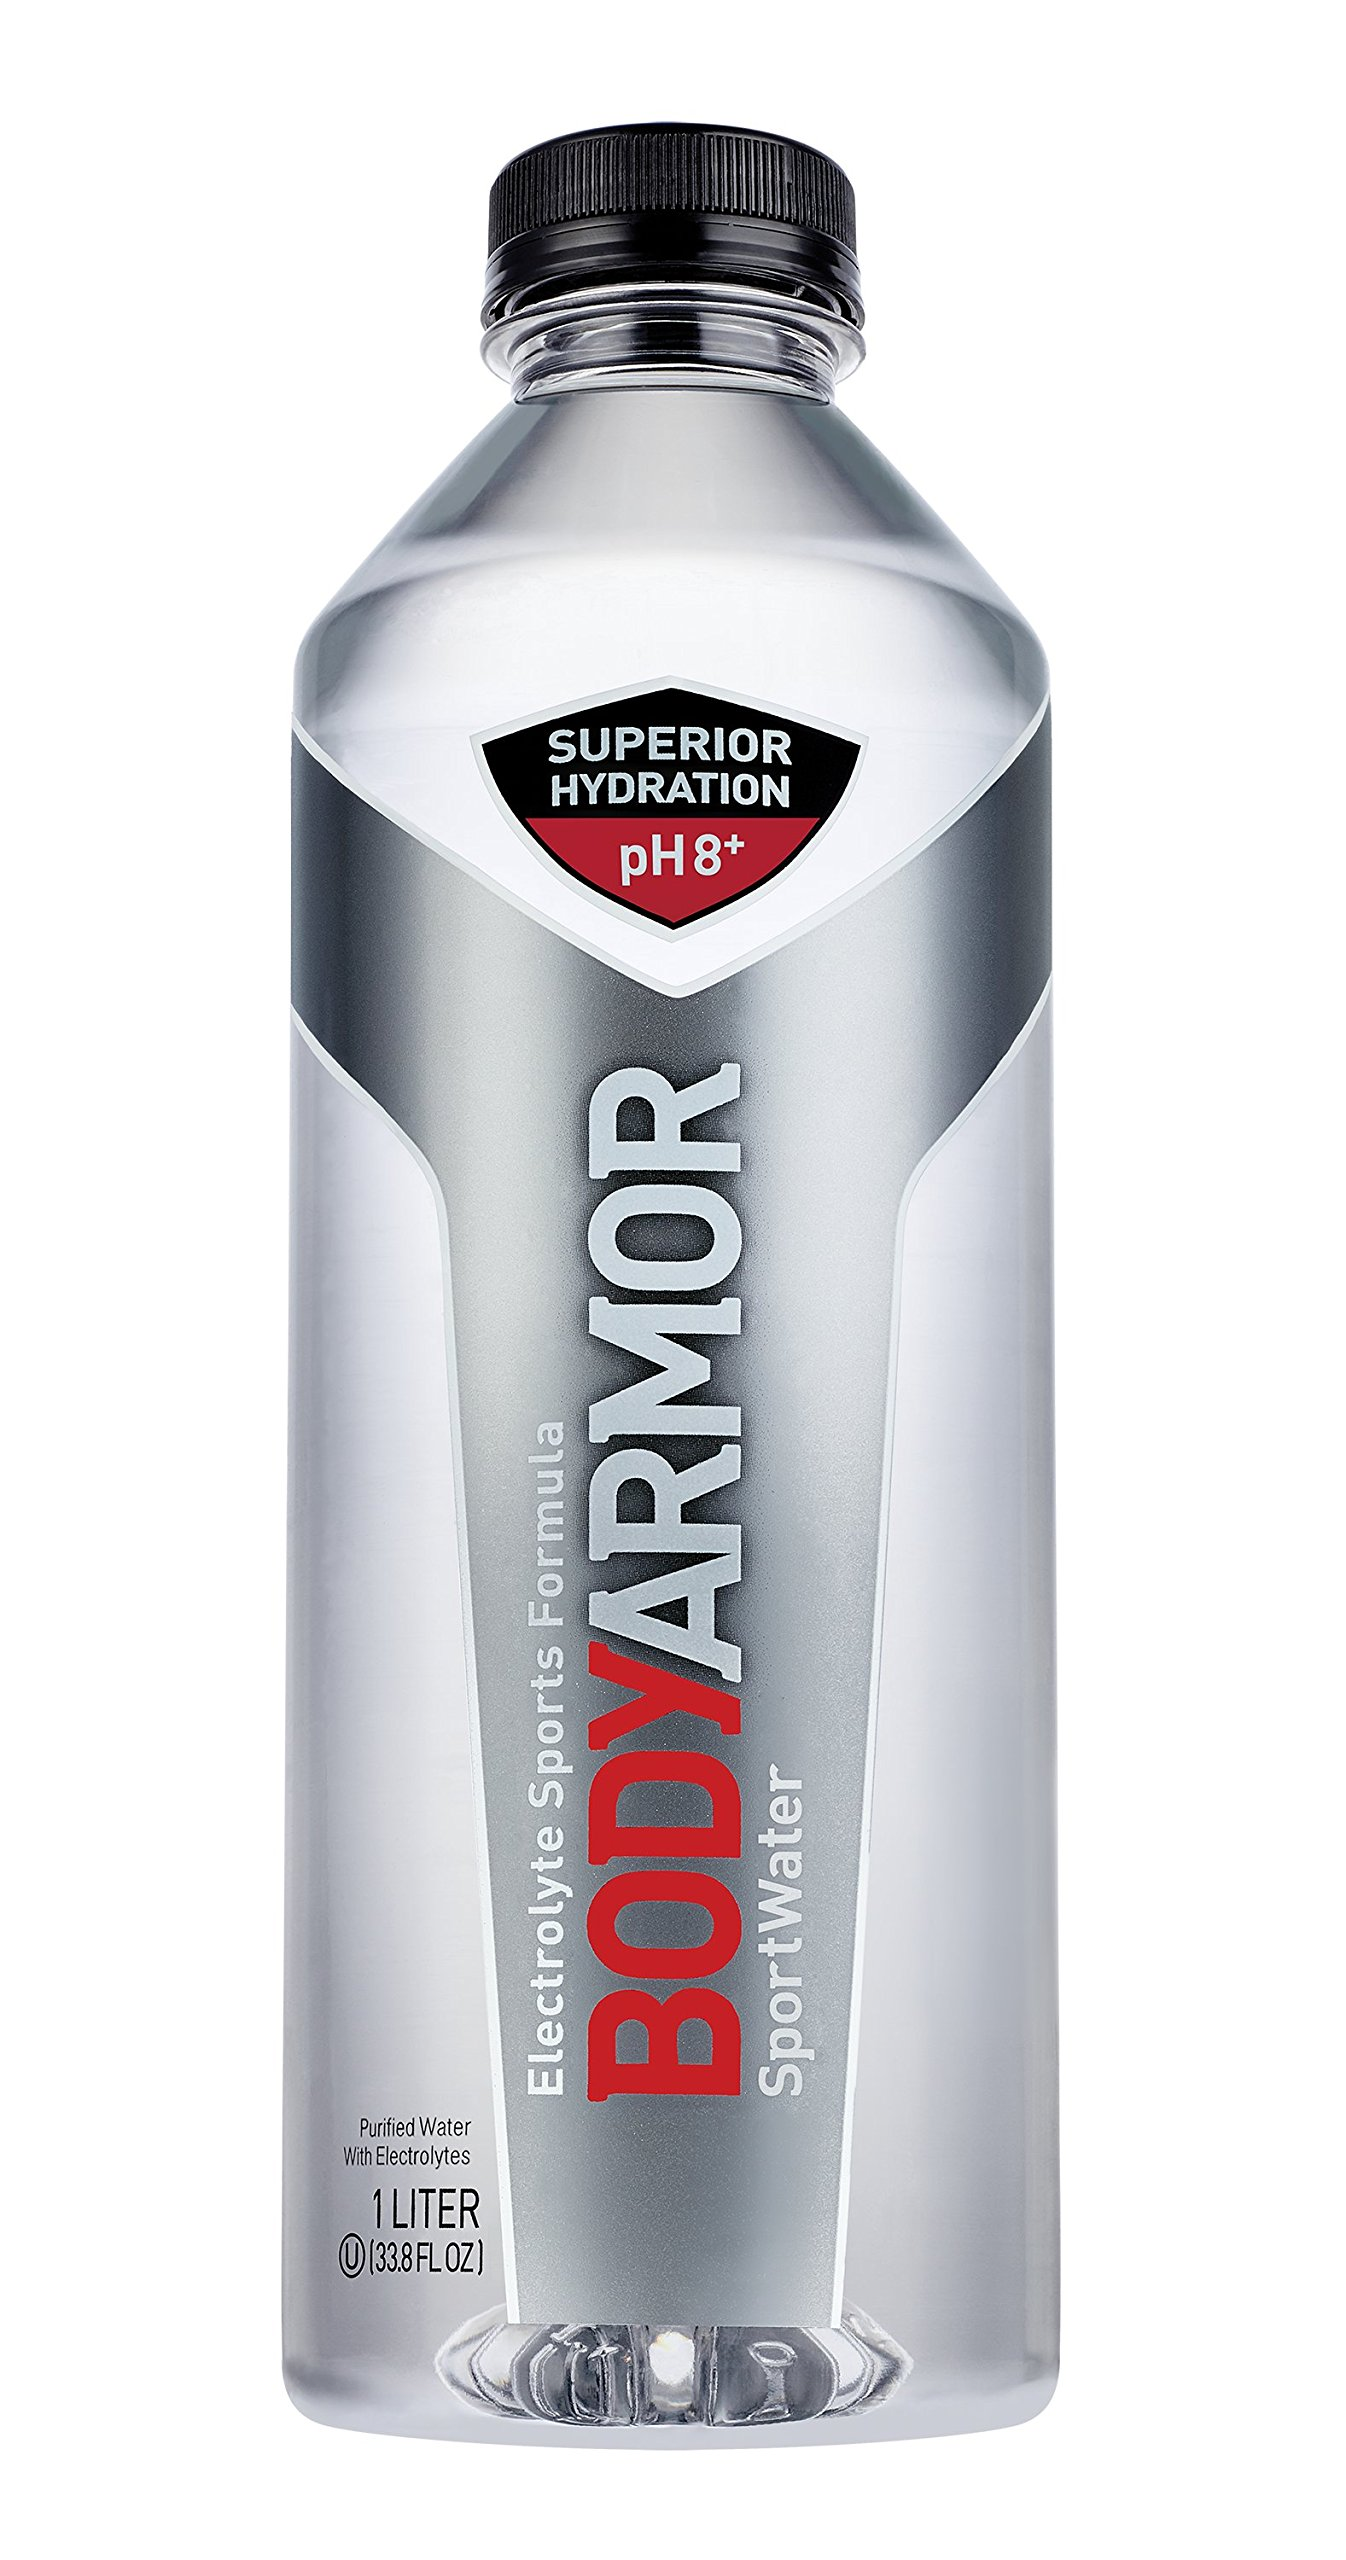 BODYARMOR SportWater Alkaline Water, Superior Hydration, High Alkaline Water pH 9+, Electrolytes, Perfect for your Active Lifestyle, 1 Liter (Pack of 12)